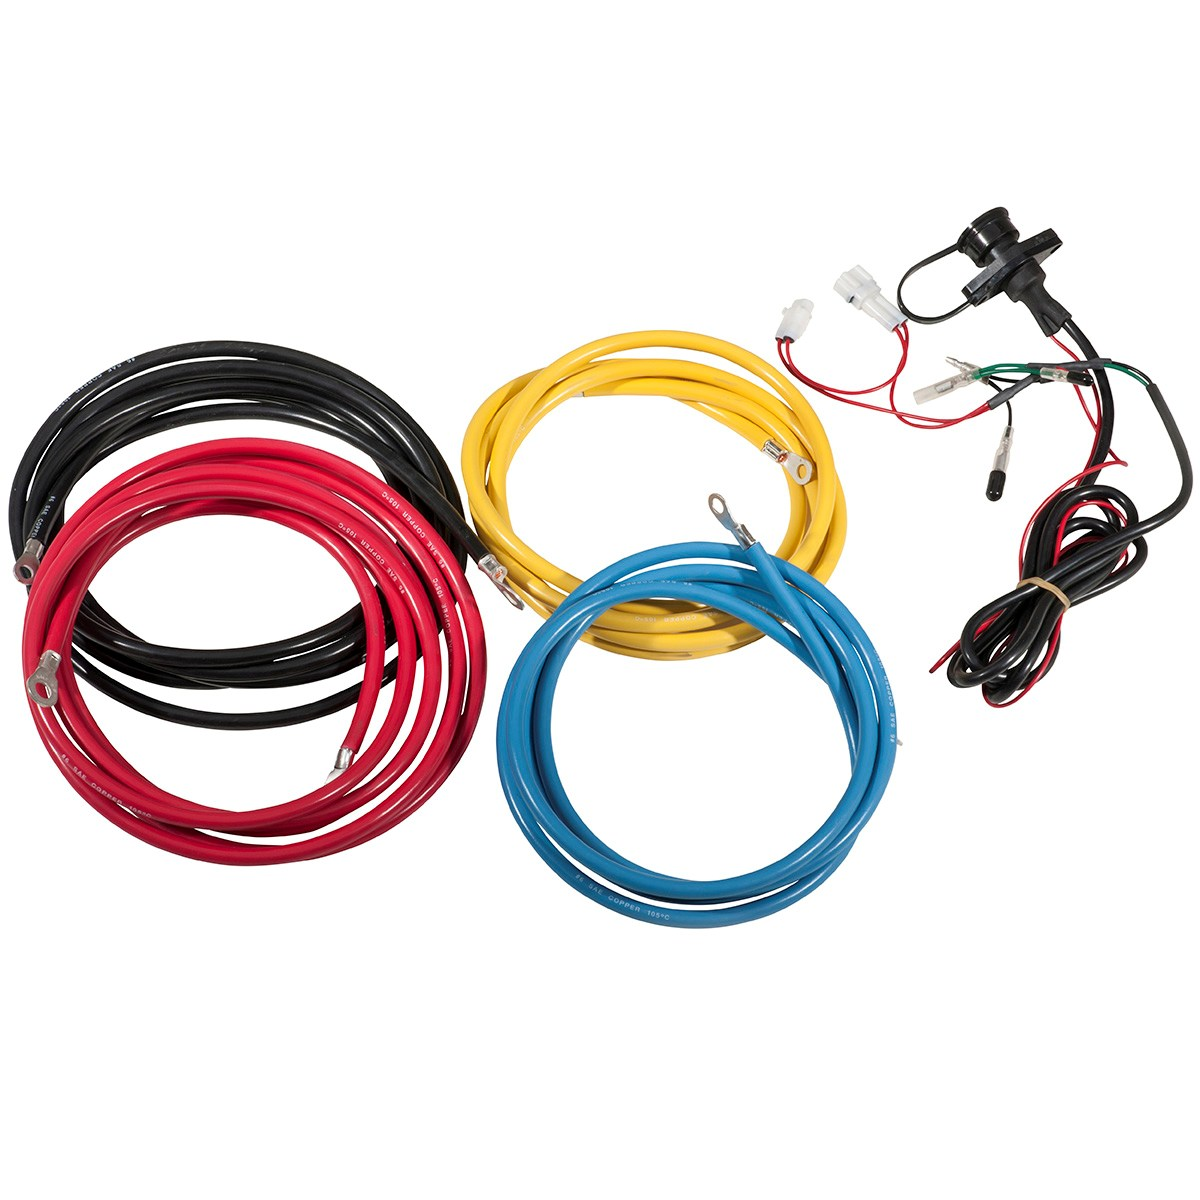 Product Details Atv Winch Wiring Harness